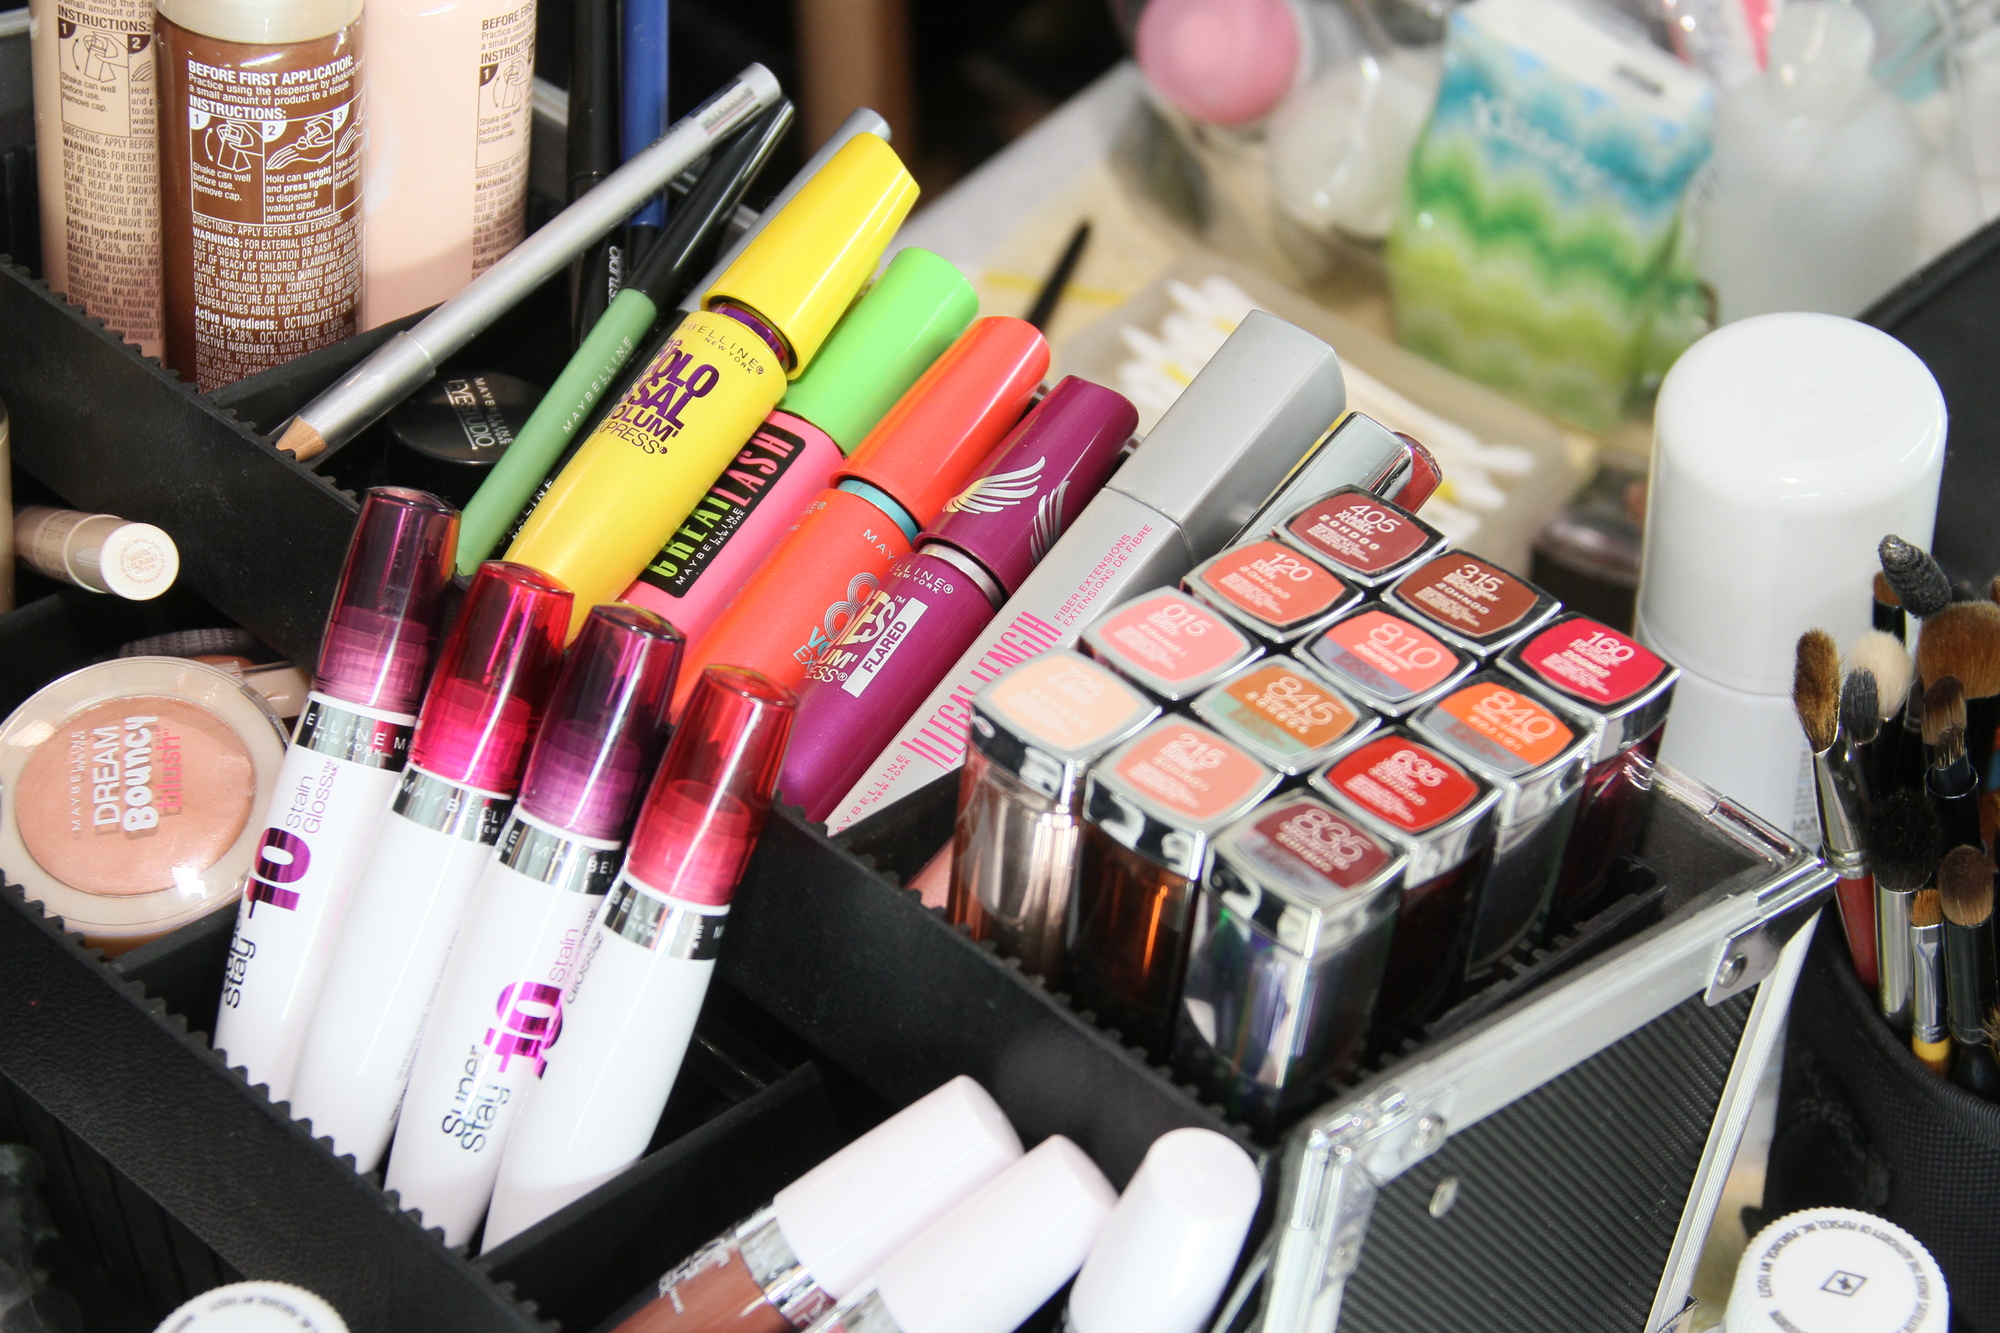 NEW YORK, NY - FEBRUARY 15: Maybellyne cosmetic products backstage at the J. Mendel Fall 2012 fashion show during Mercedes-Benz Fashion Week at The Theatre at Lincoln Center on February 15, 2012 in NYC.